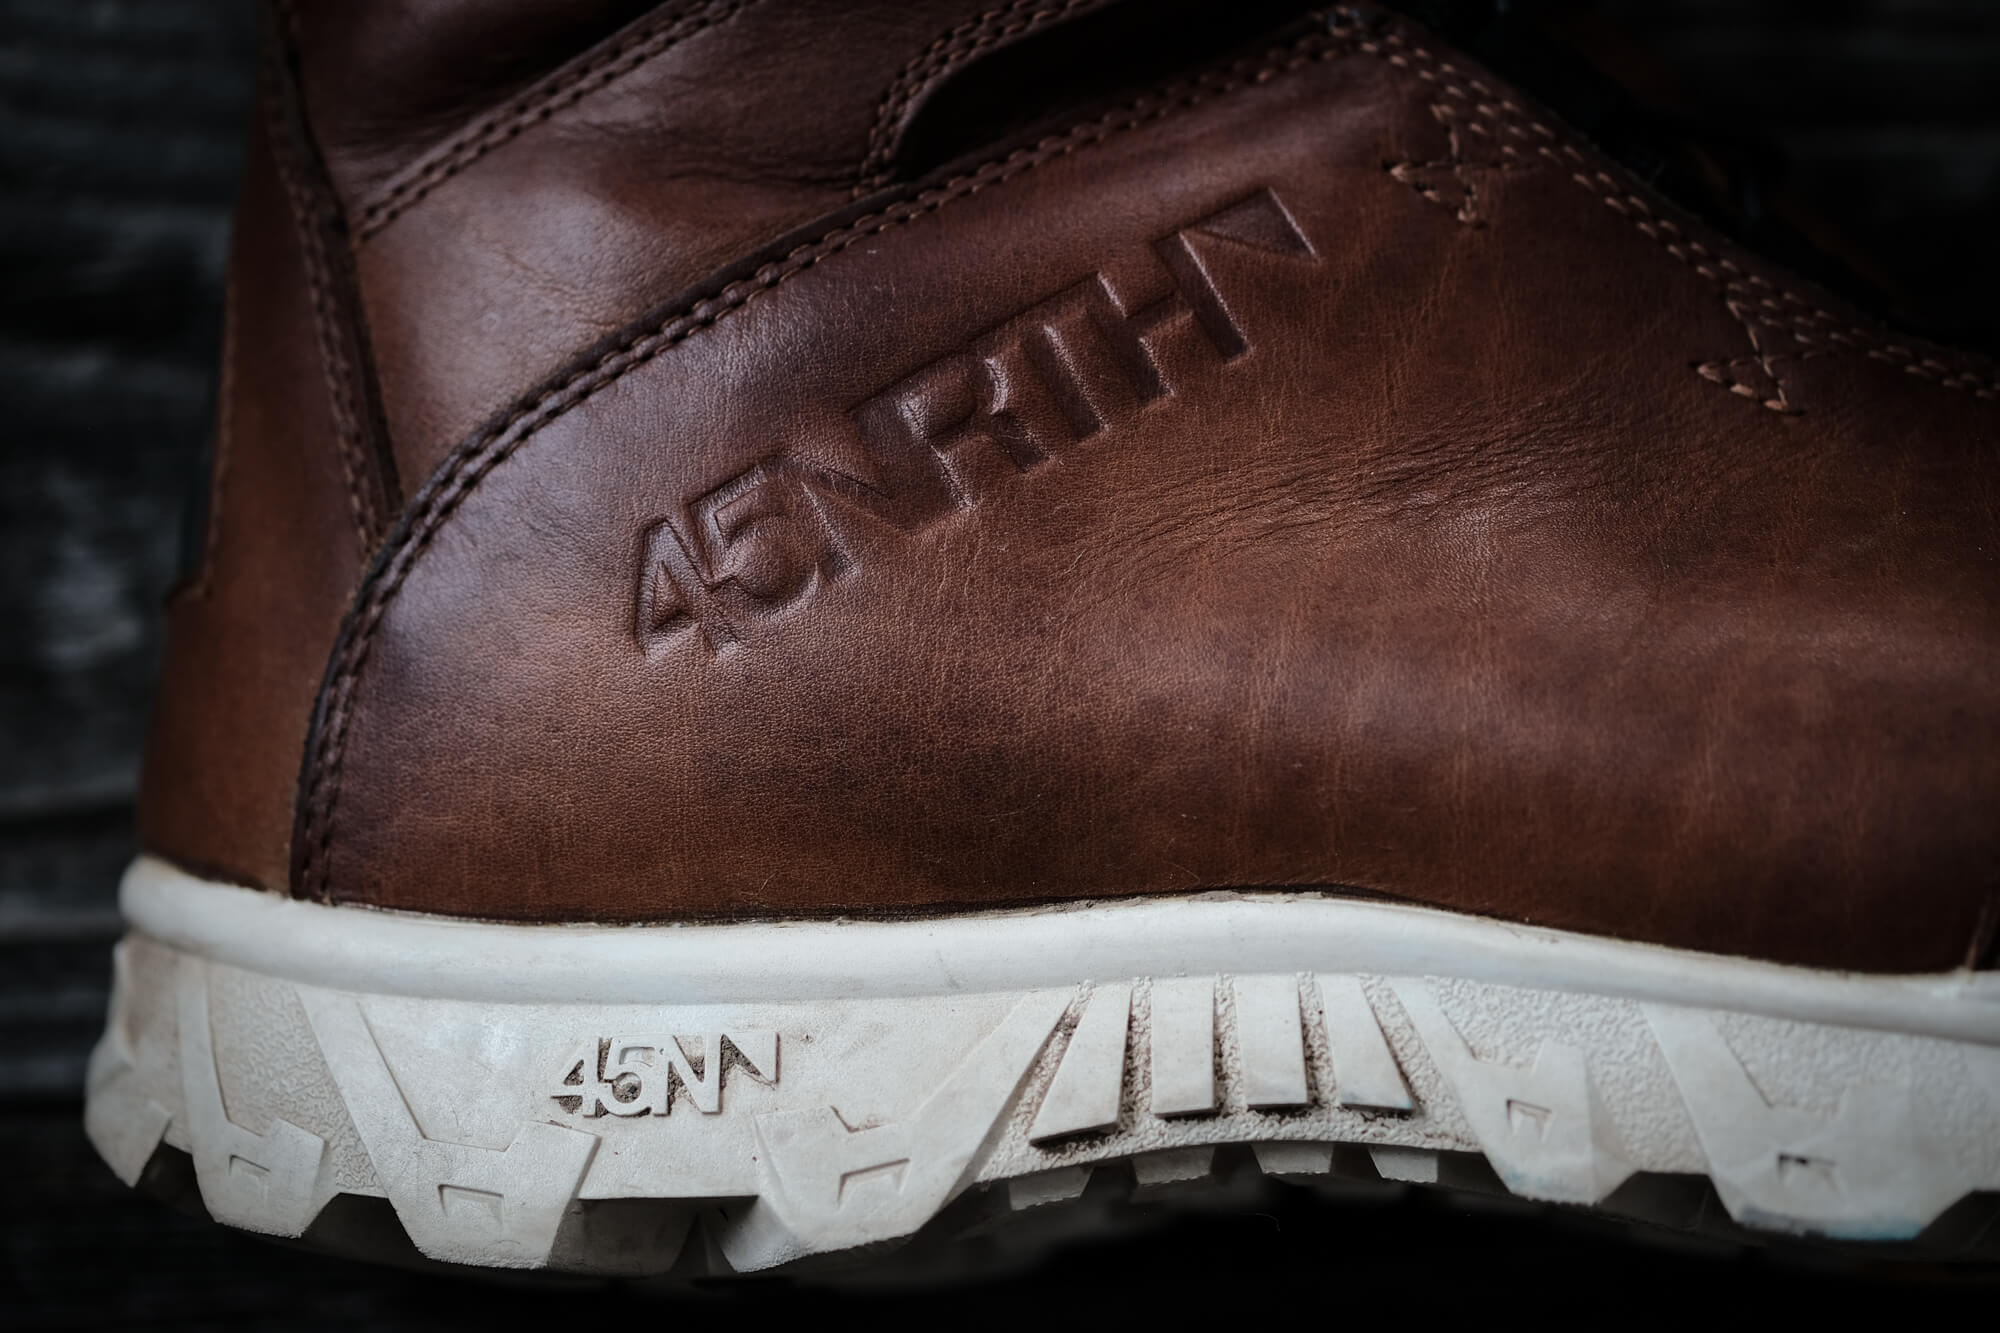 Closeup of 45NRTH logo embedded in leather of conditioned boot